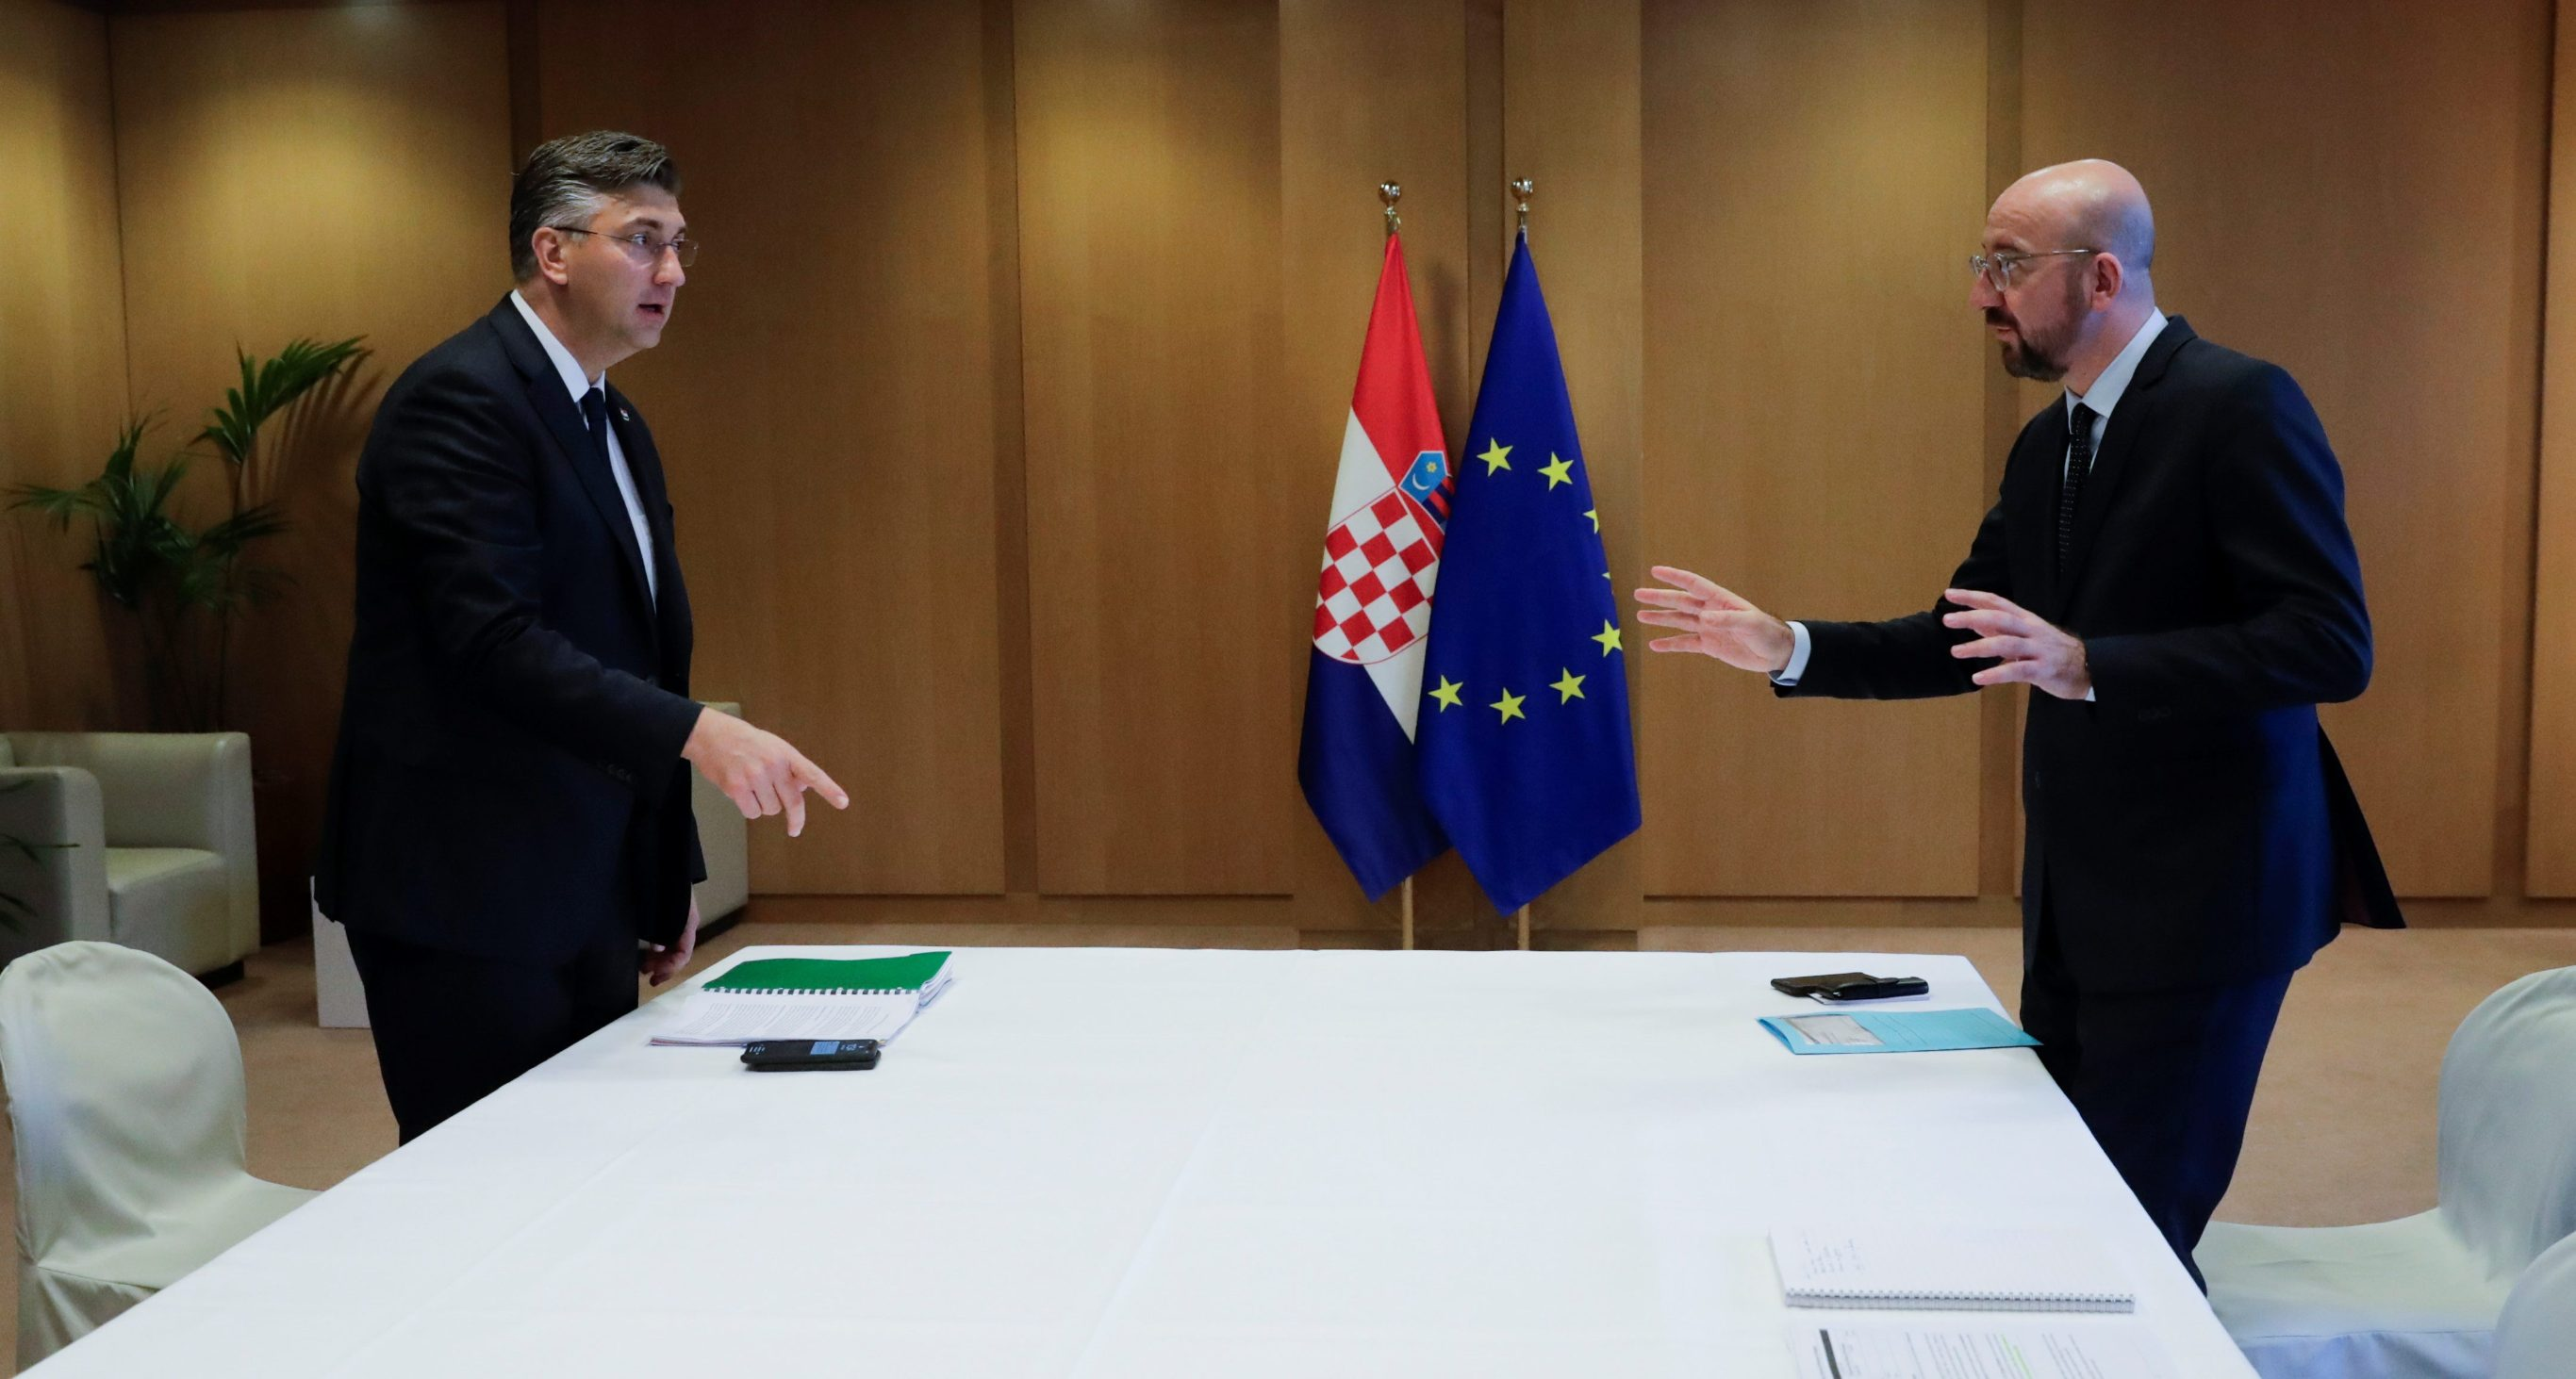 Croatian Prime Minister Andrej Plenkovic is welcomed by President of the European Council Charles Michel during a bilateral meeting ahead of a European Union leaders summit in Brussels, Belgium December 12, 2019.  Olivier Hoslet/Pool via REUTERS